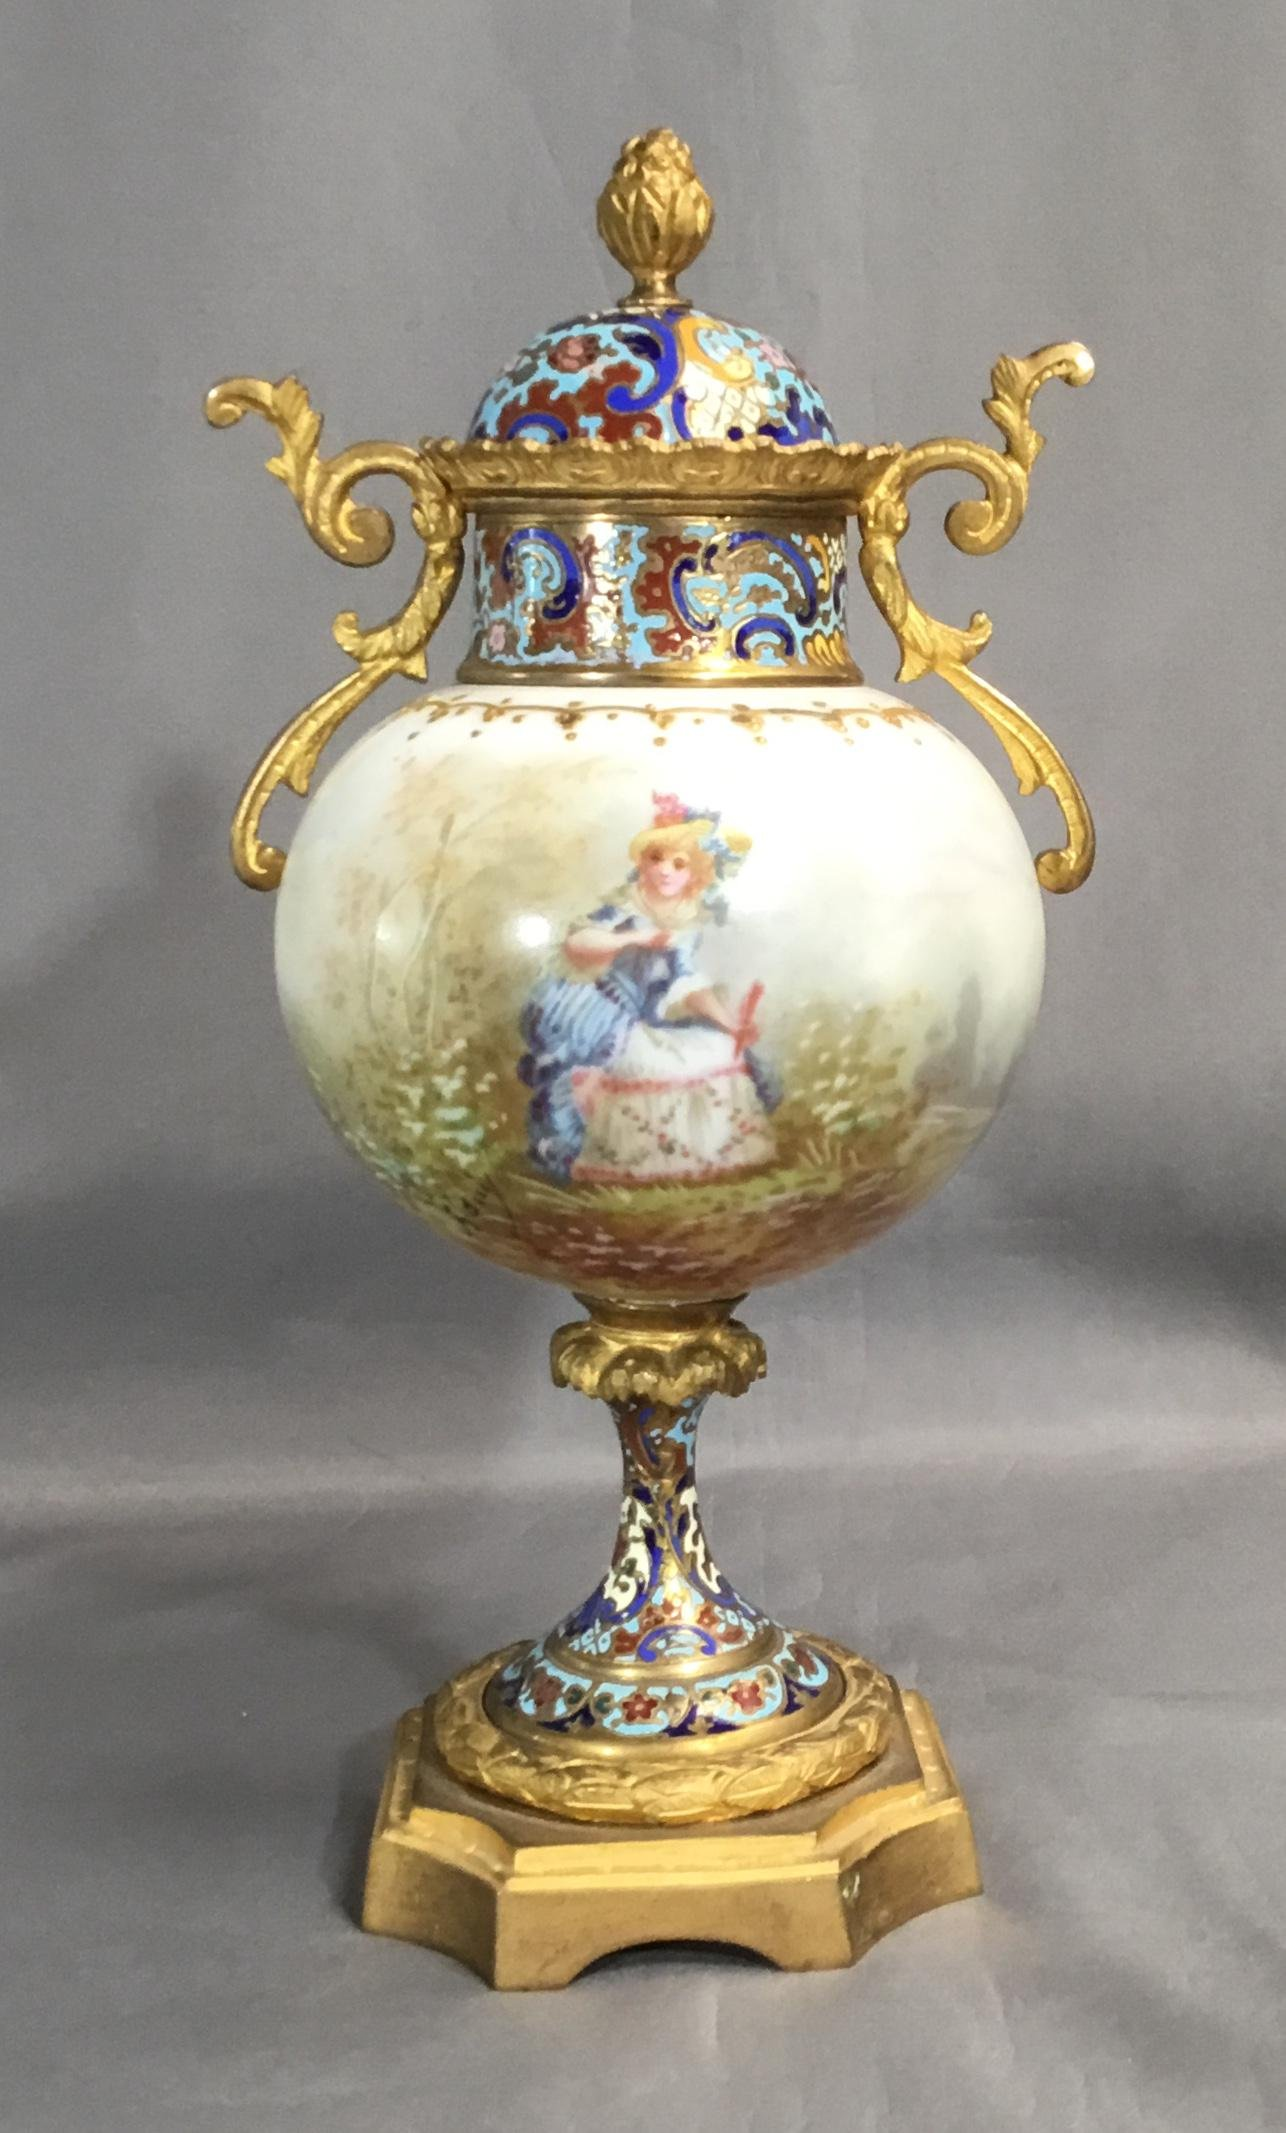 ANTIQUE SEVRES STYLE URN FRENCH ORMOLU